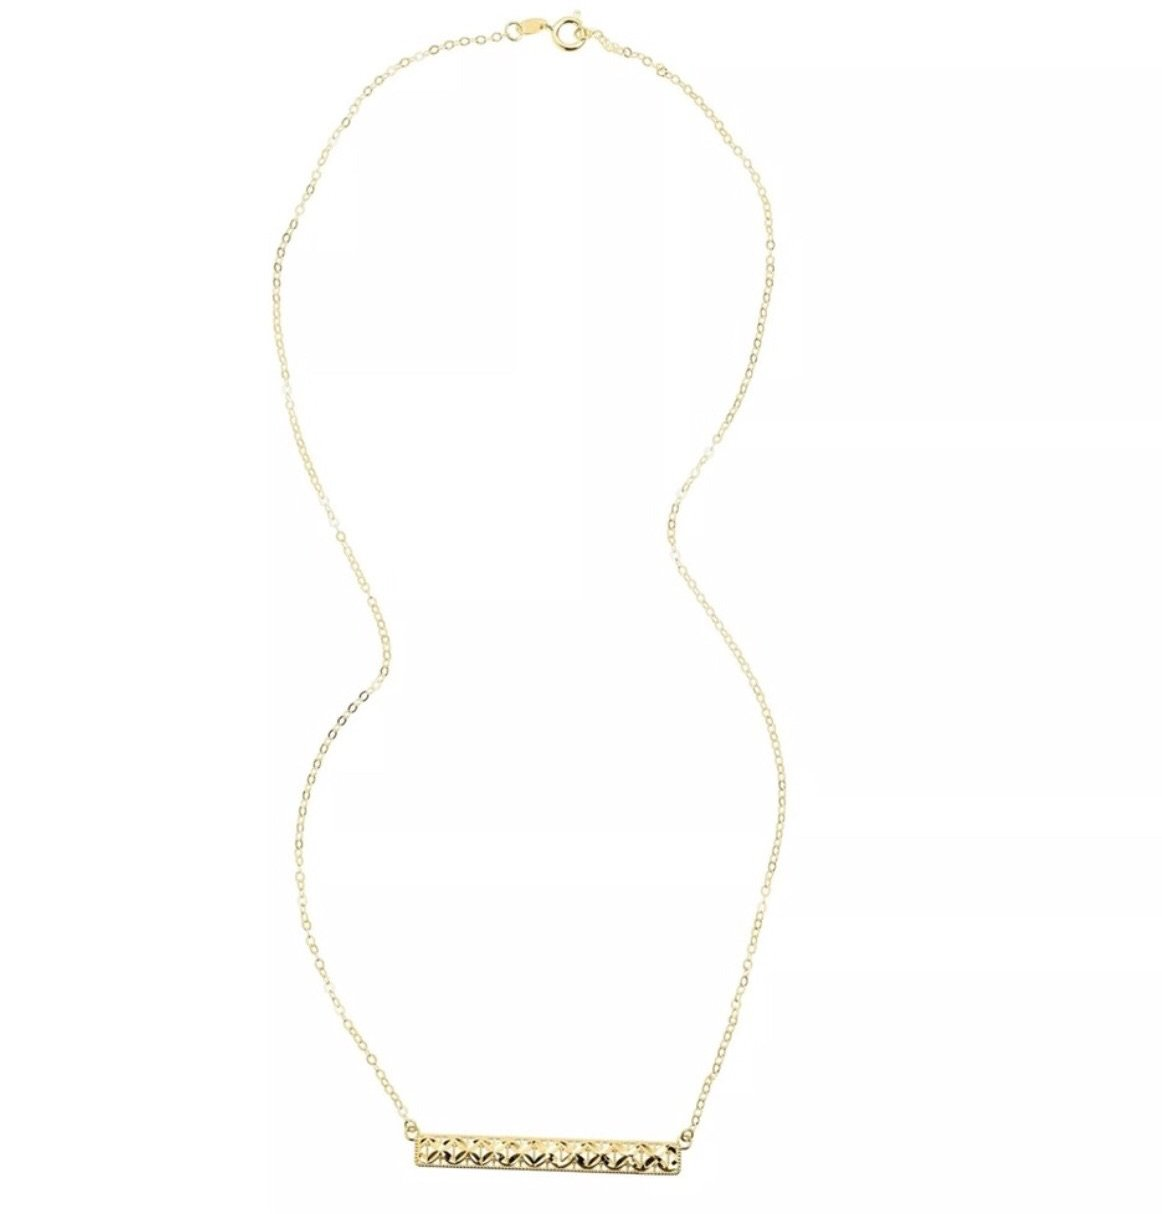 Eternity Horizontal Textured Bar Necklace in Solid 10K Yellow Gold